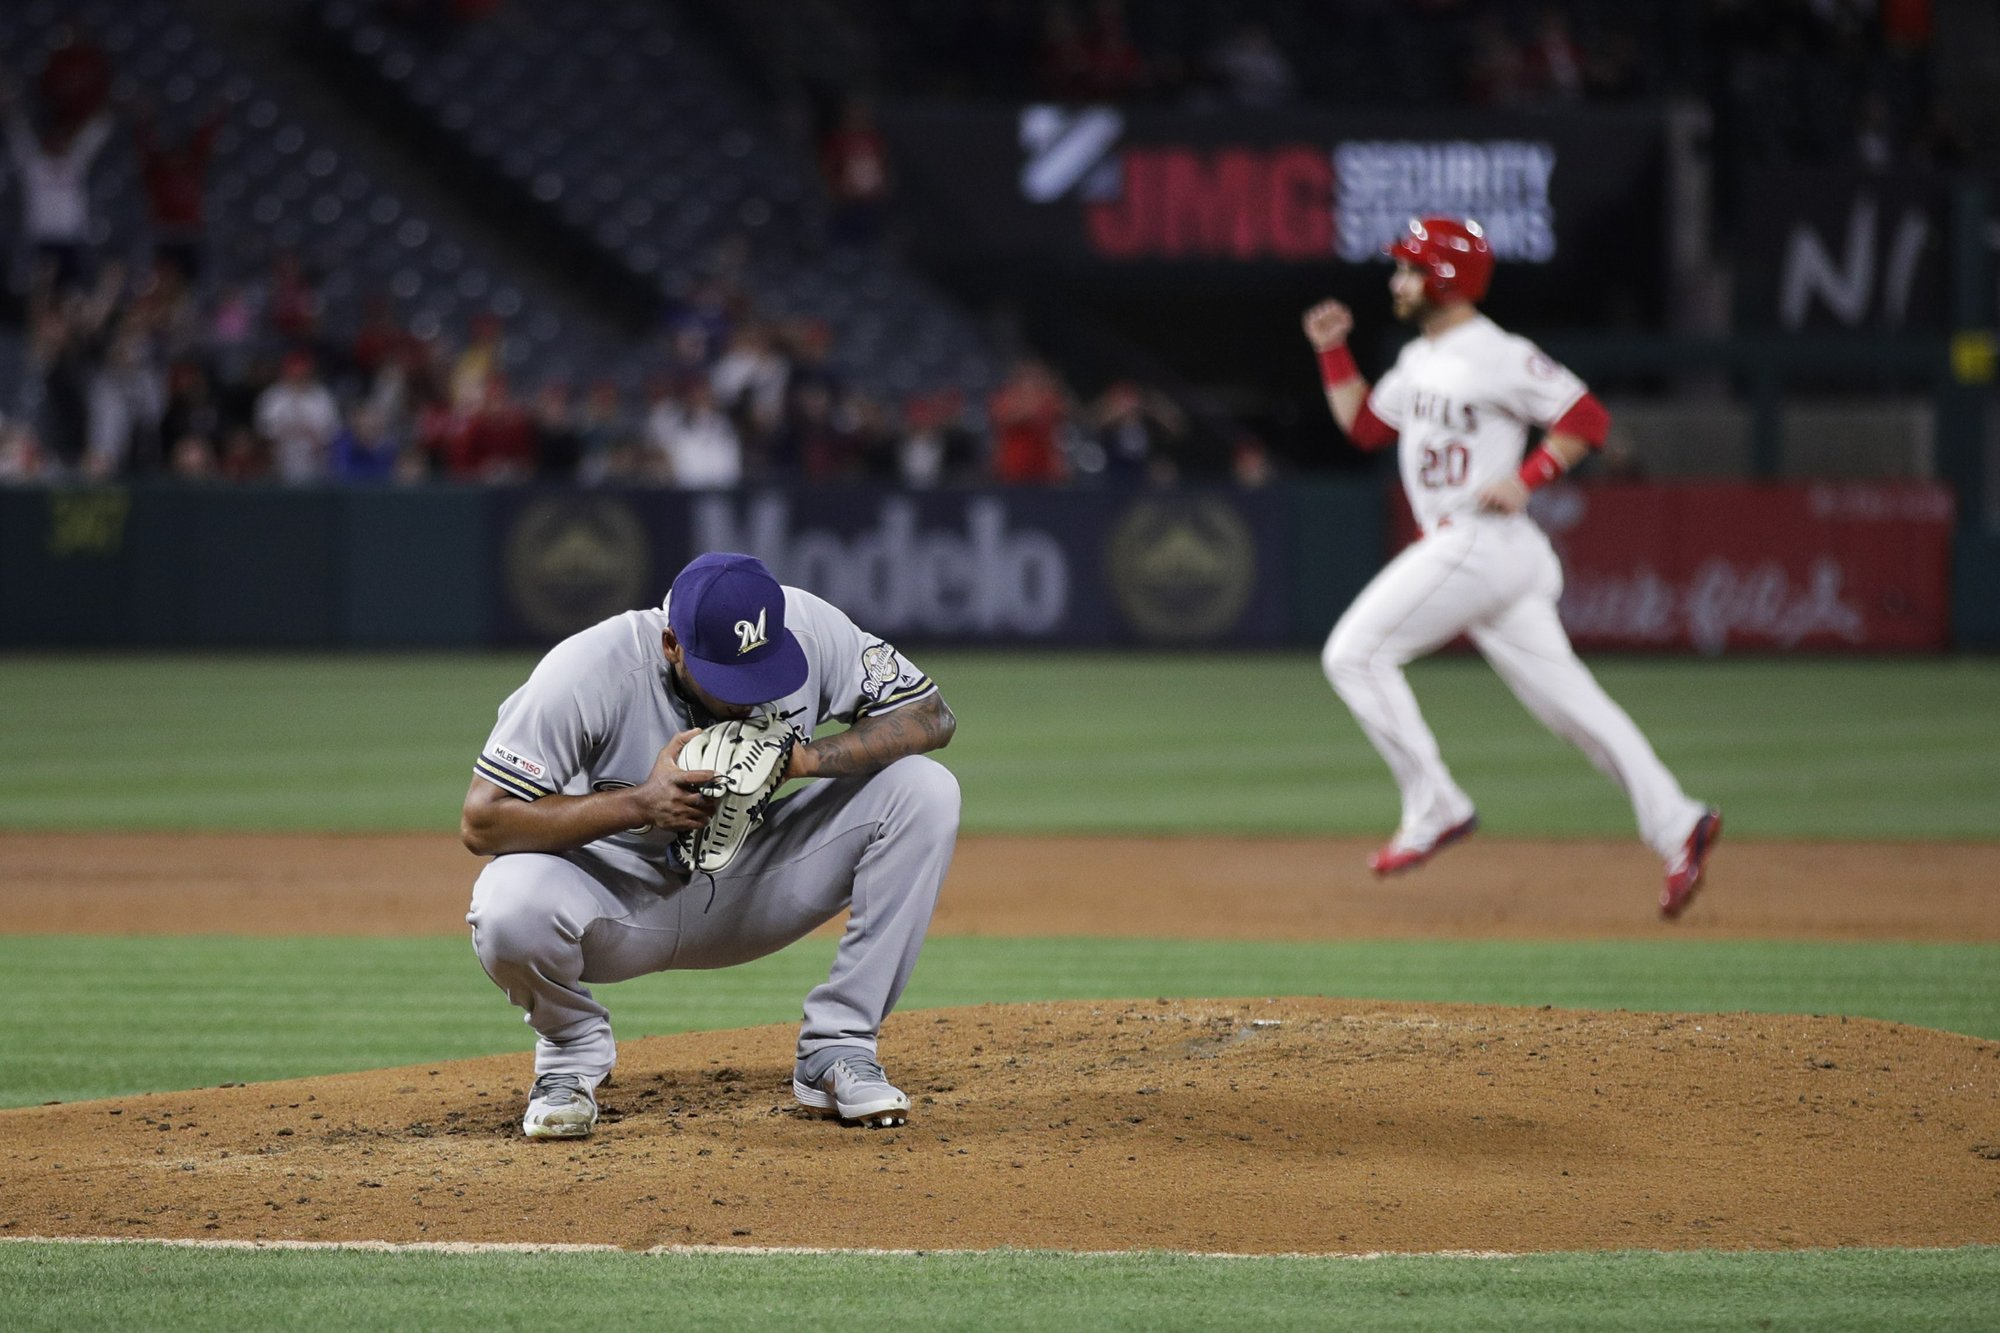 Angels rally for 11-8 win over Brewers after Trout gets hurt